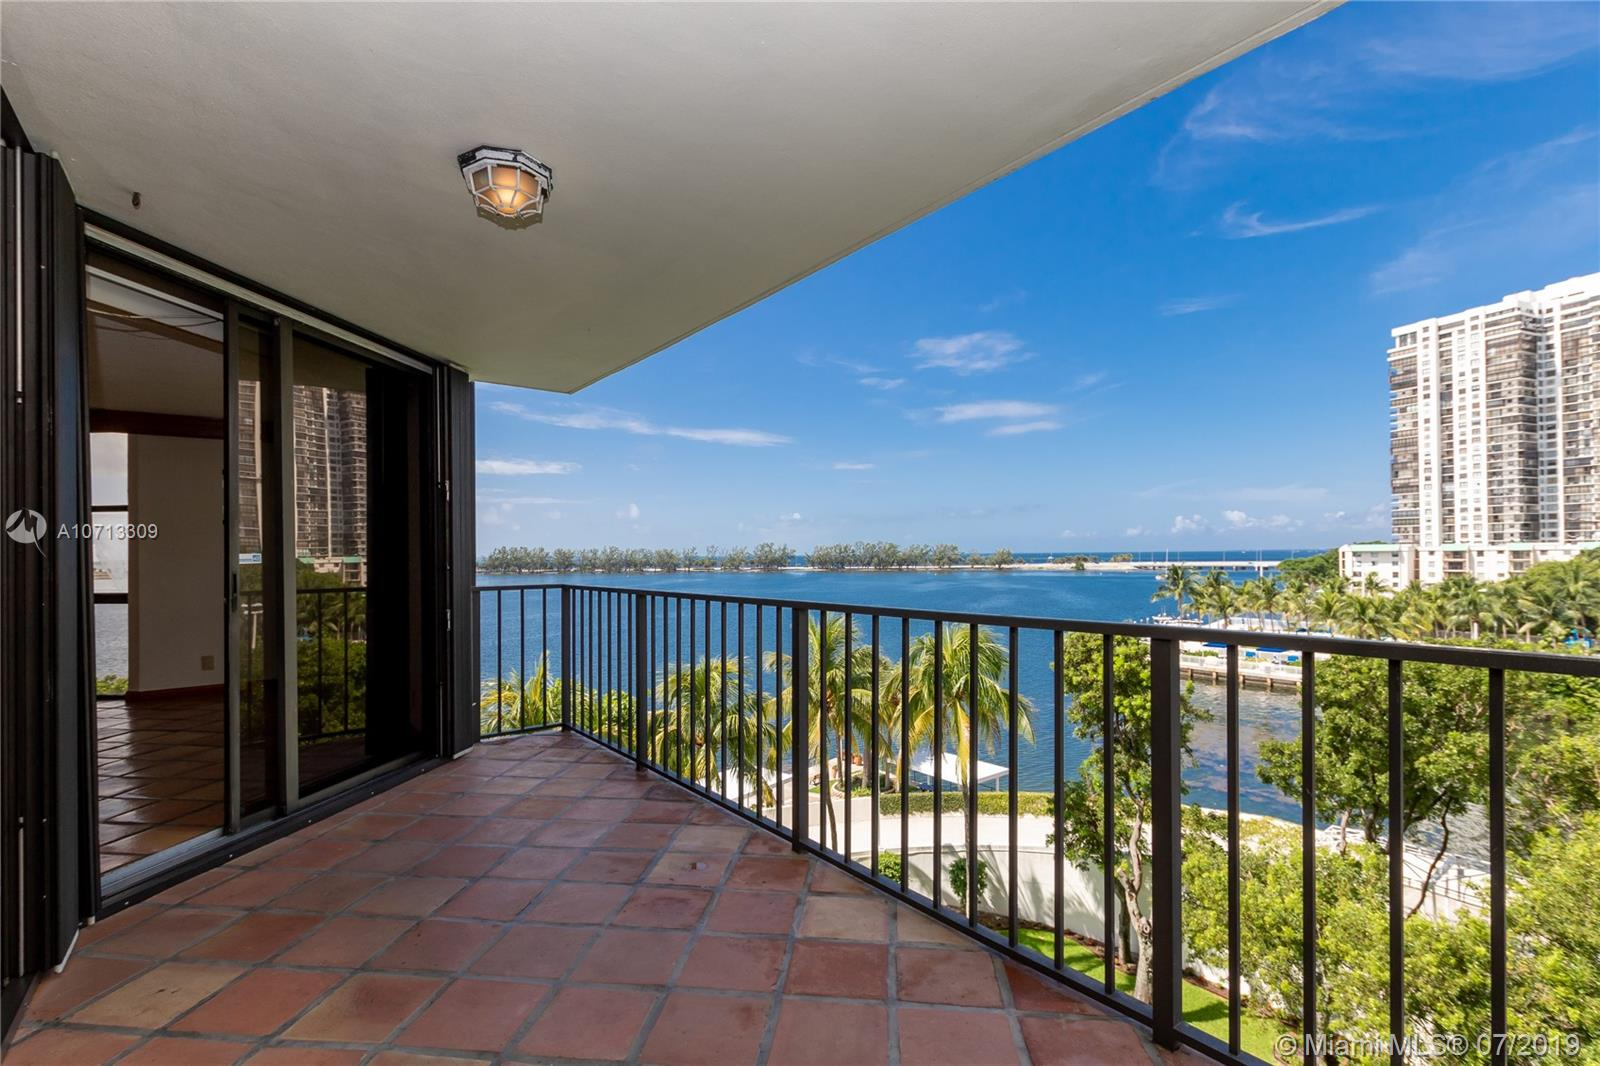 1925 Brickell Ave, D508 - Miami, Florida